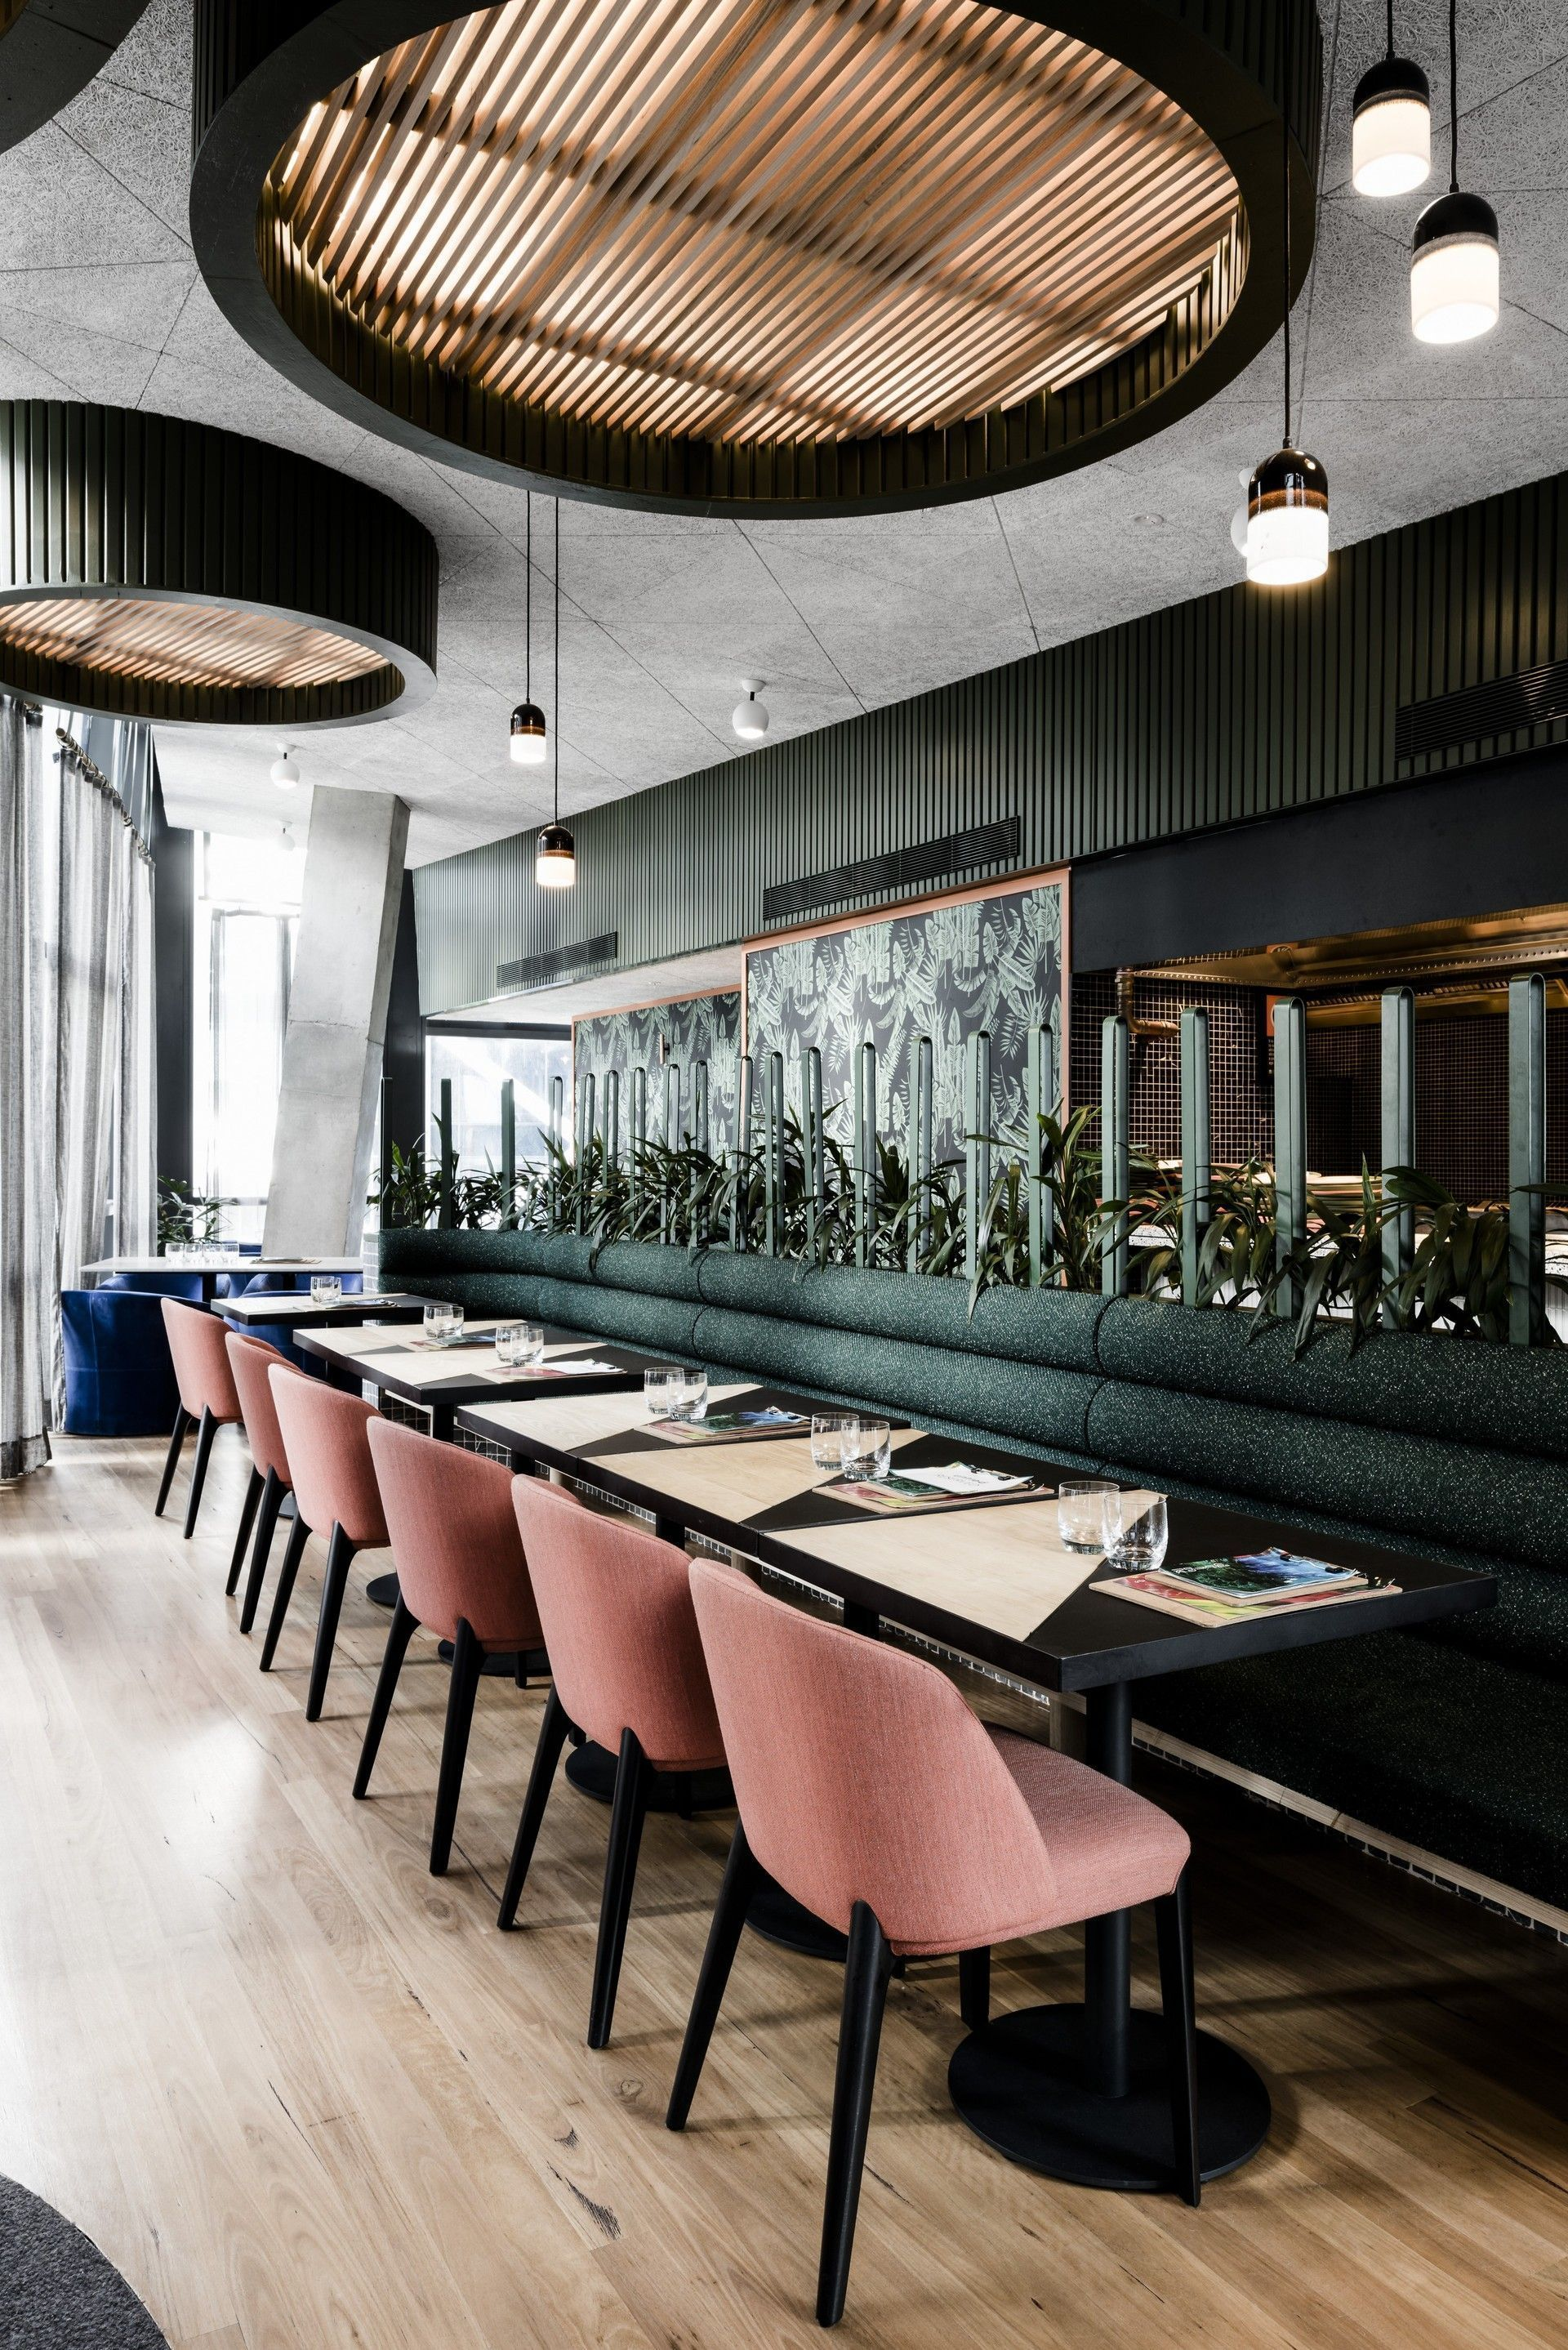 Wondering where to find the best selection of furniture inspiration for your restaurant project? Discover Luxxu's selection at luxxu.net